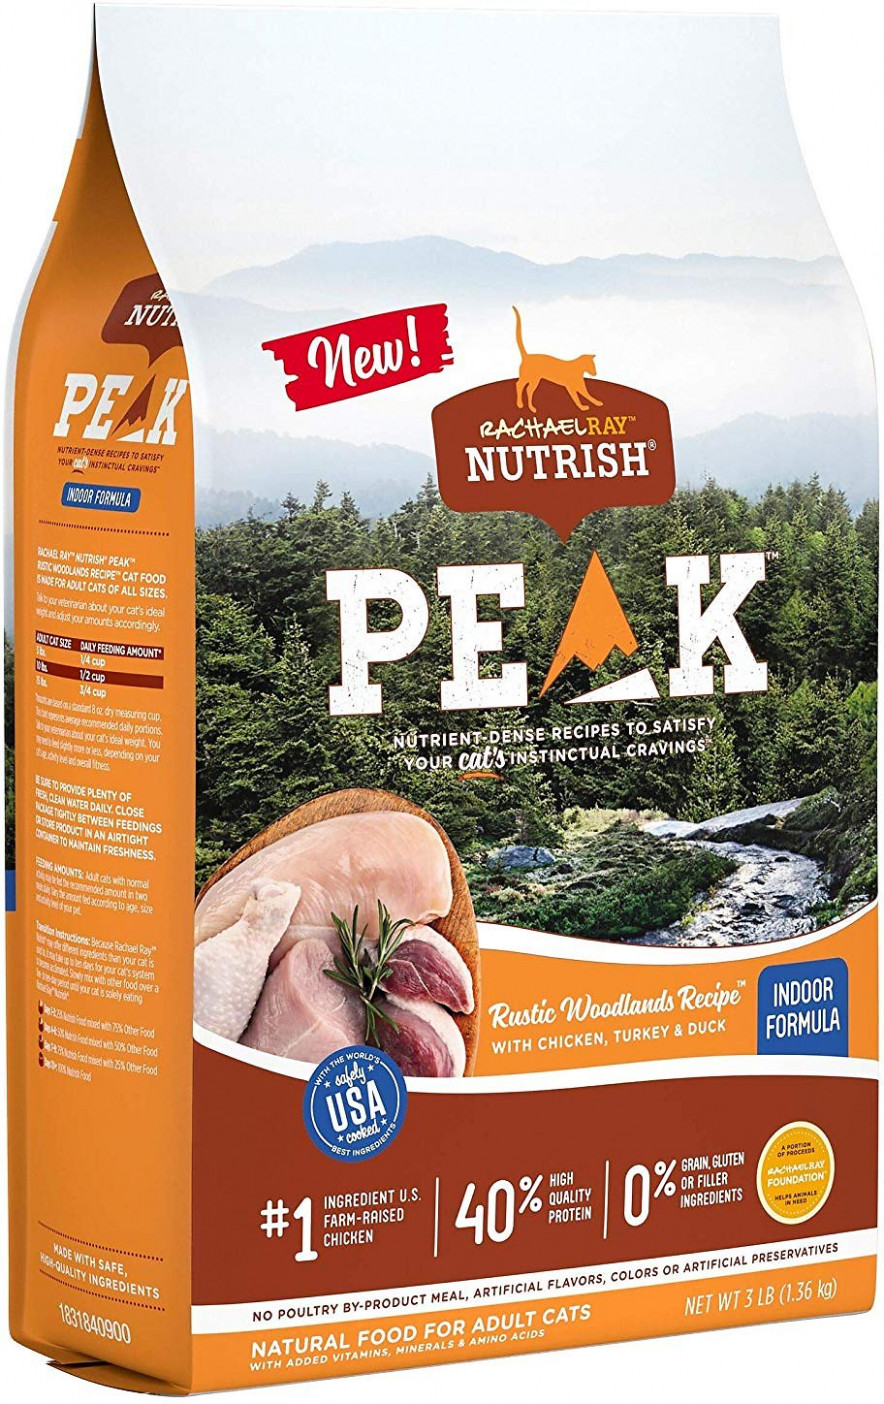 Rachael Ray Nutrish PEAK Rustic Woodlands Recipe with Chicken, Turkey &  Duck Dry Cat Food, 12-lb bag - recipes rachael ray chicken